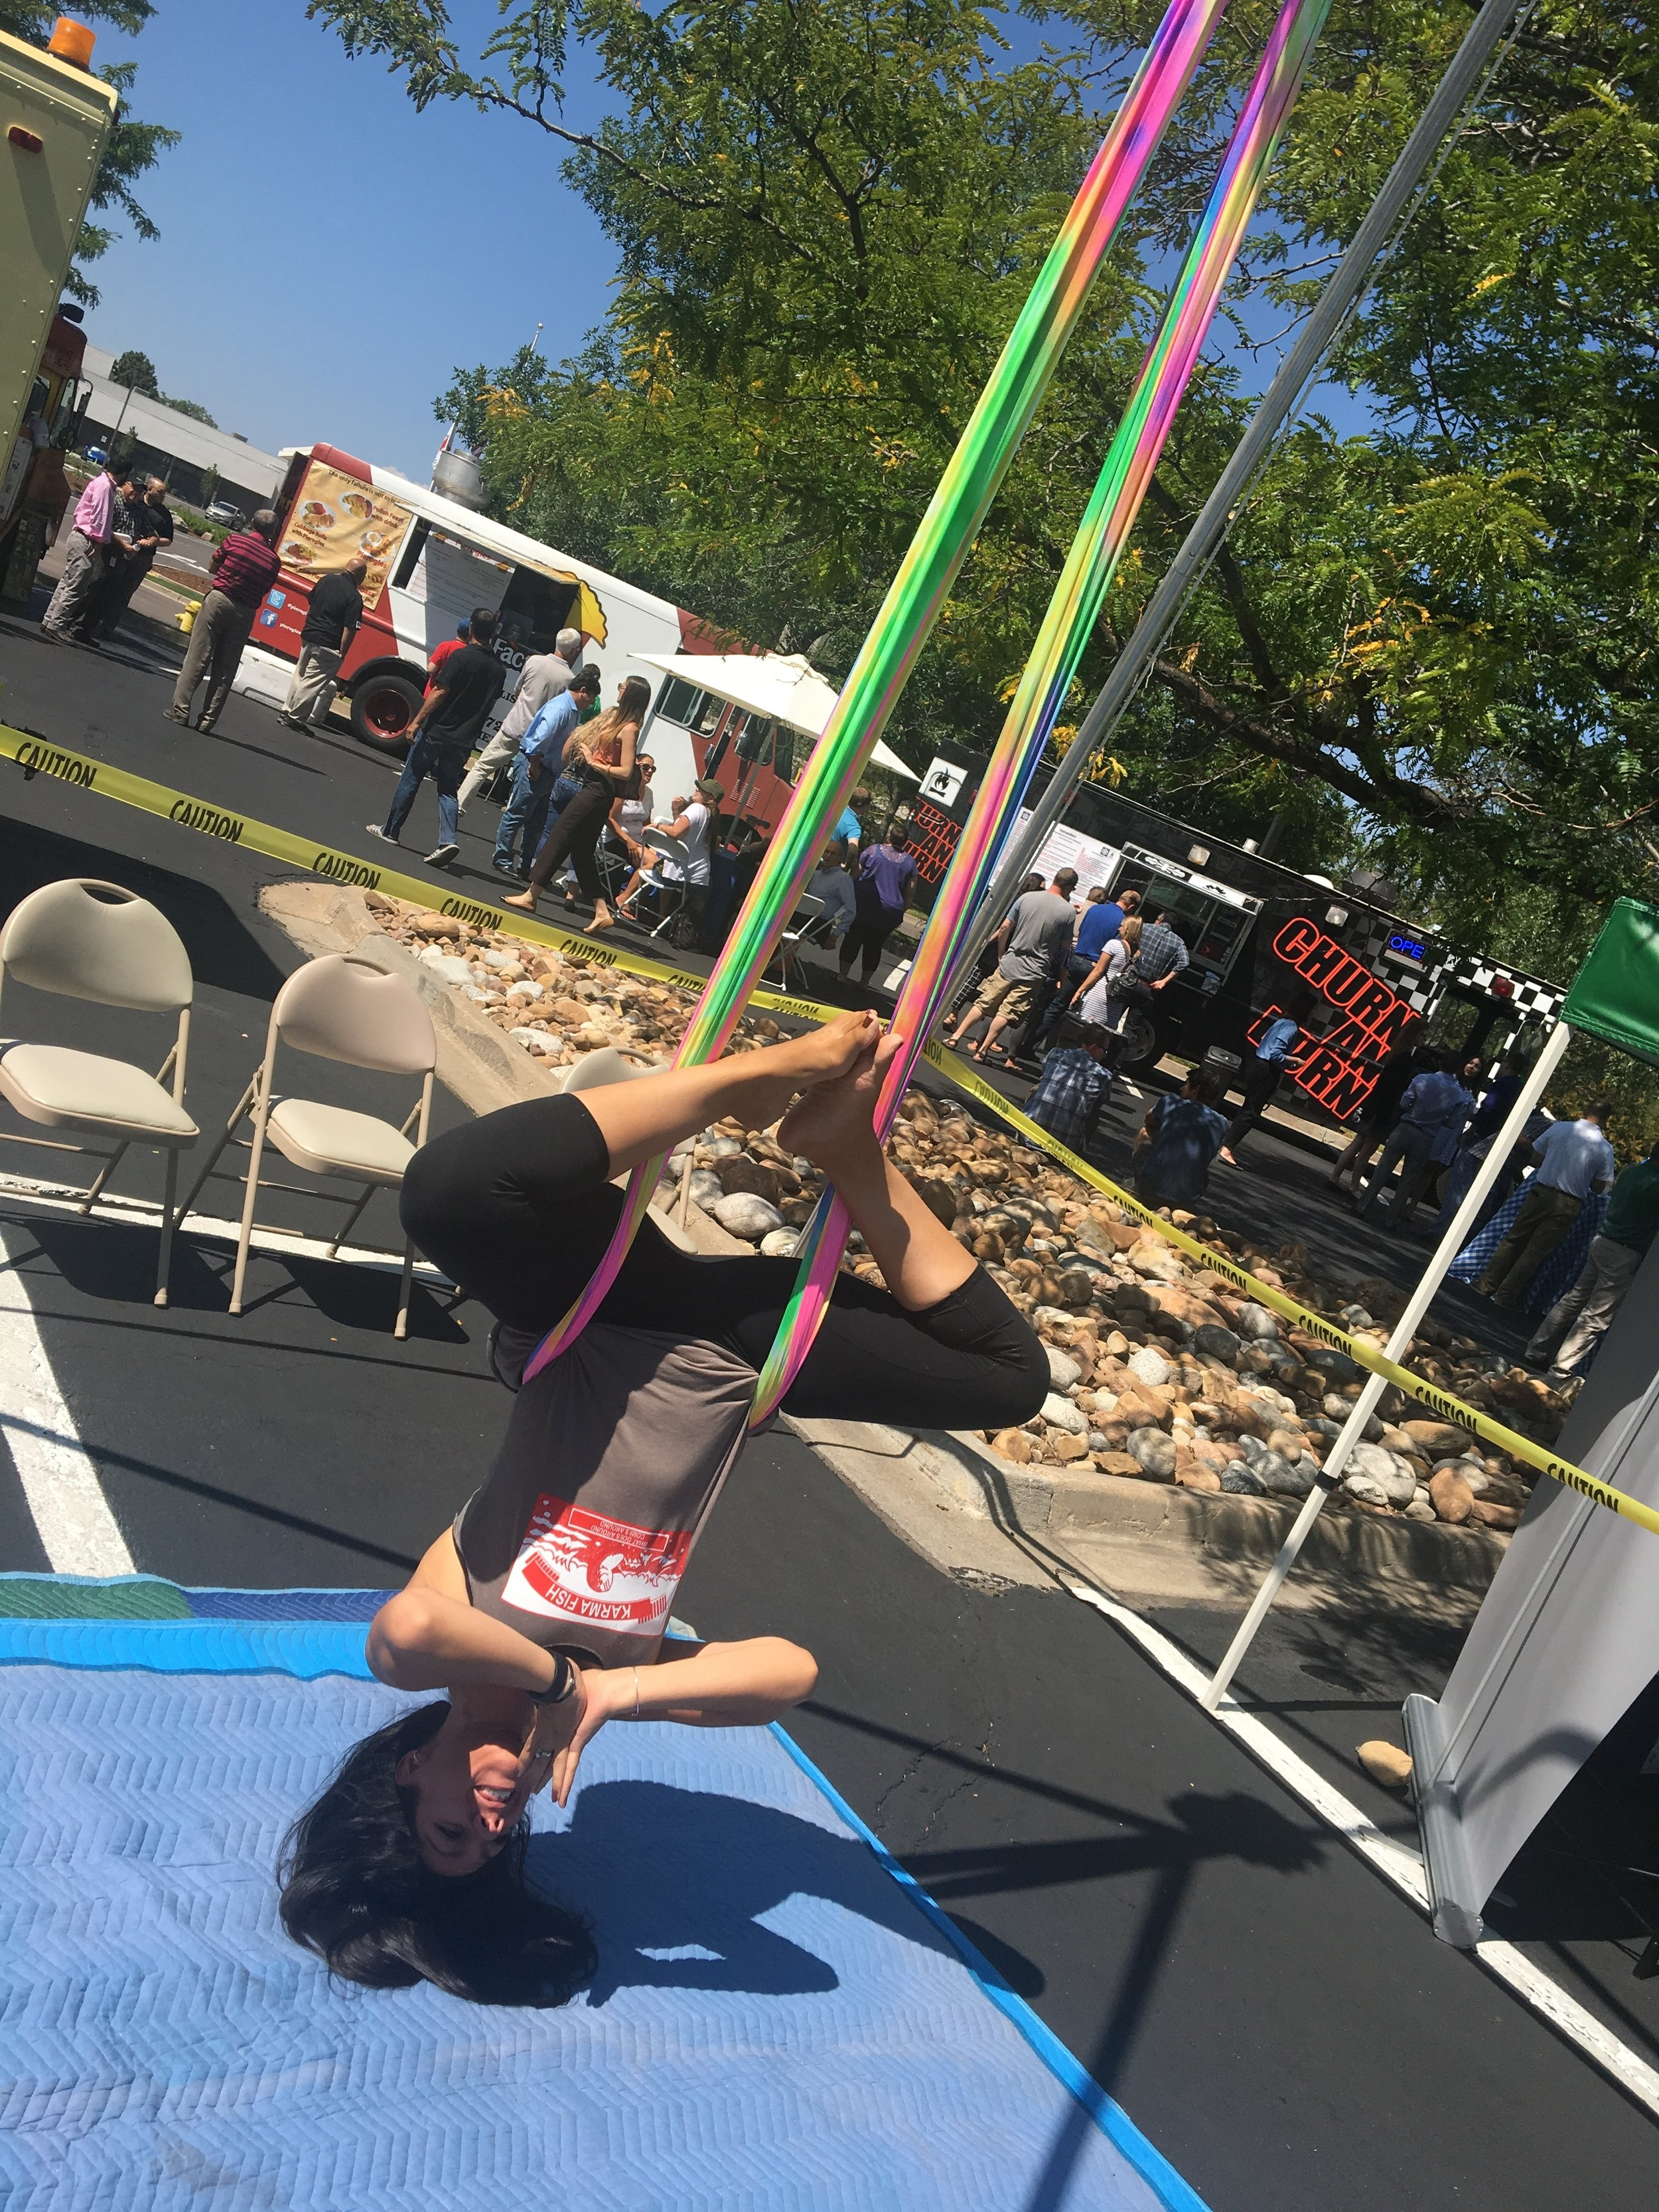 This photo was taken at the Tava Yoga booth at DTC Eats.